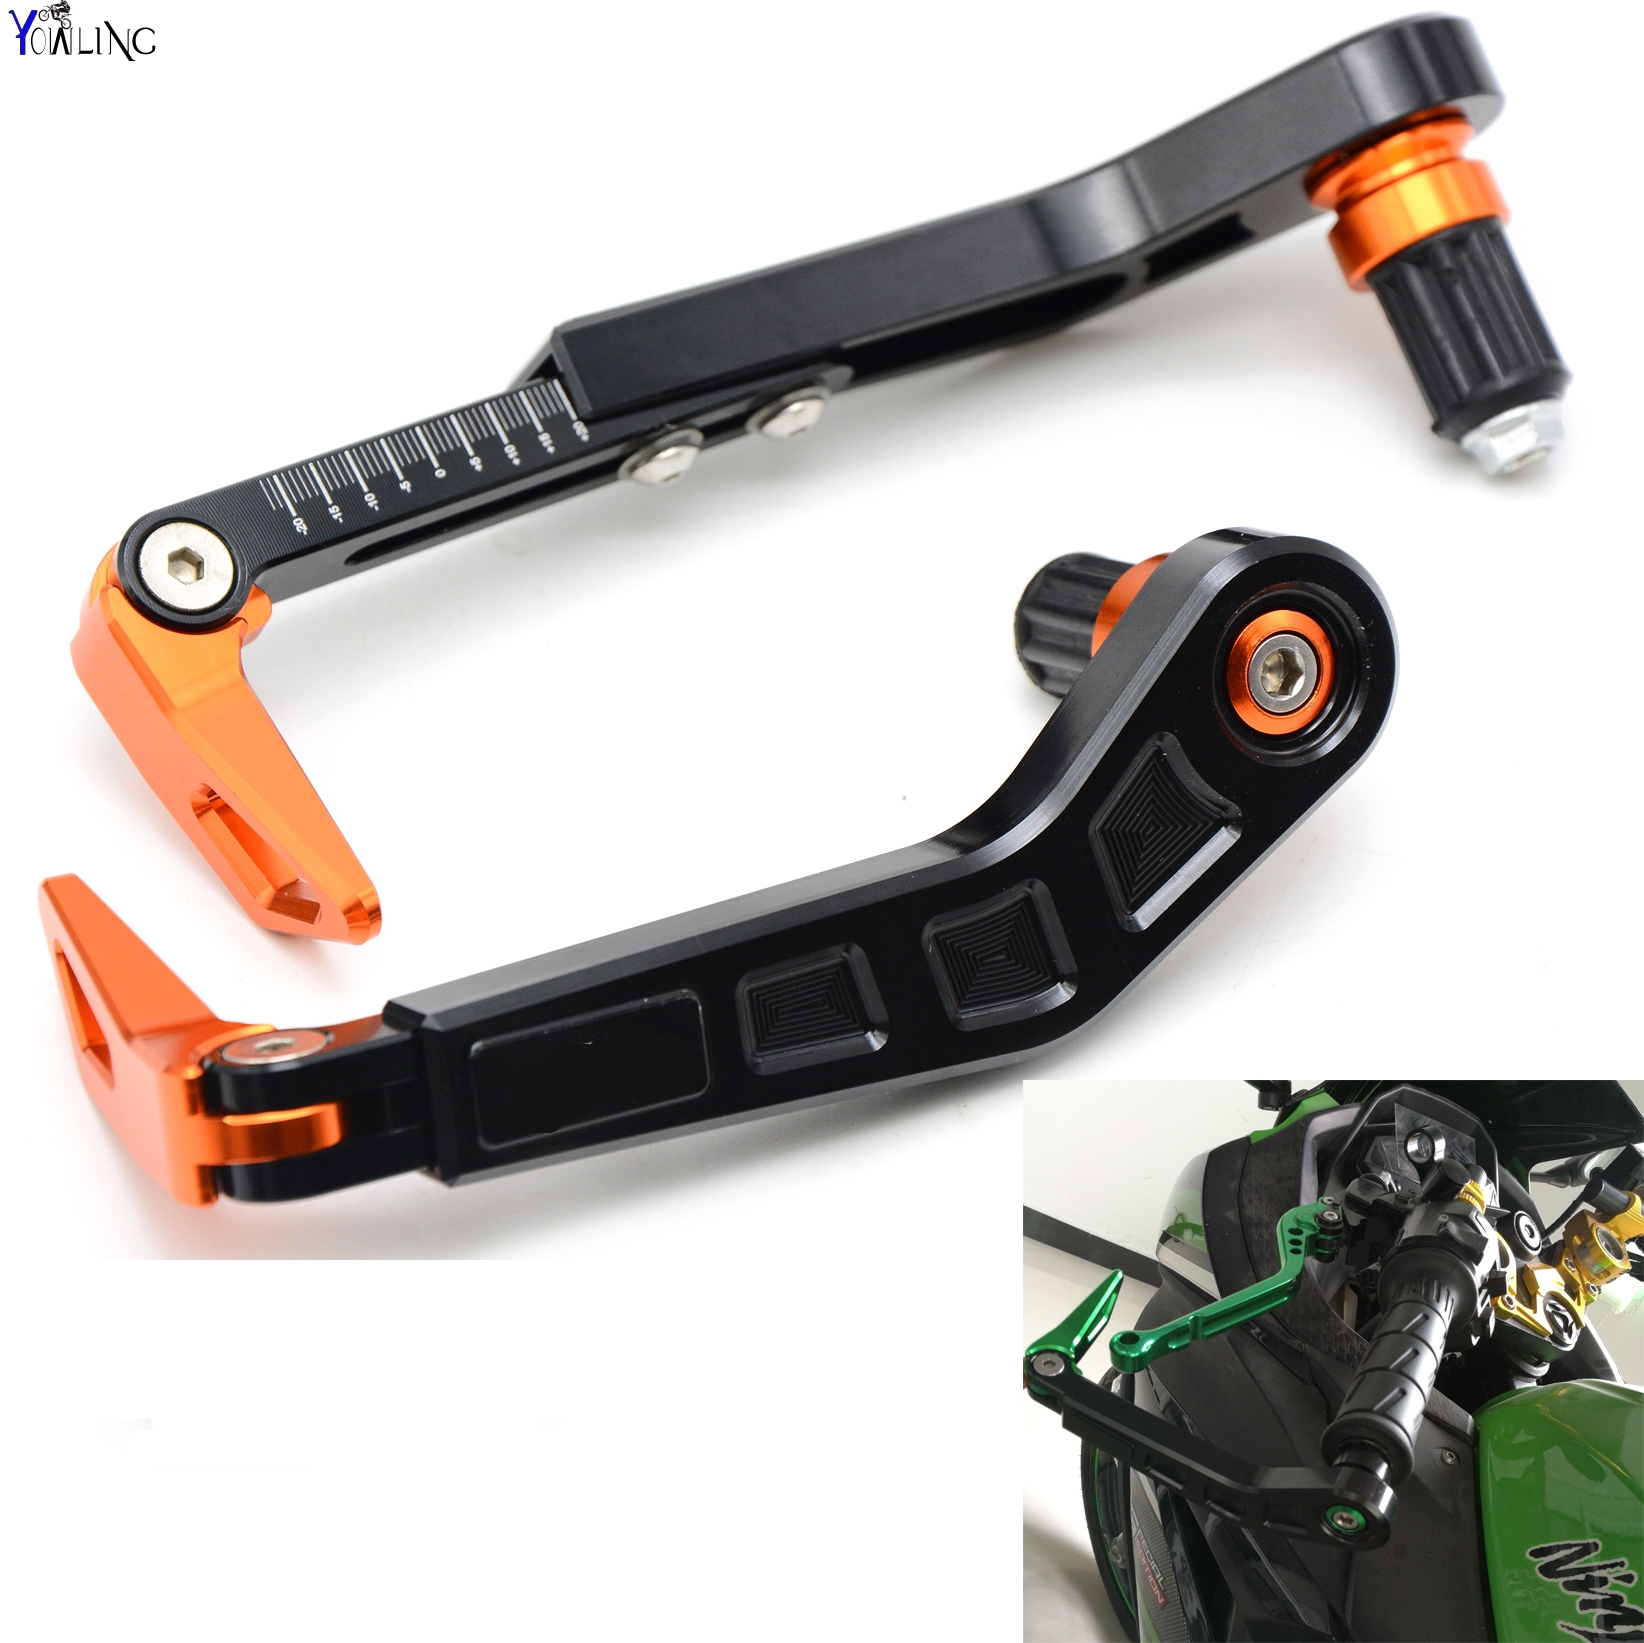 Universal 7/822mm Motorcycle Handlebar Brake Clutch Lever Guard for KTM 1050 1090 1190 1290 Adventure R RC8 Super Duke T ABS short long brake clutch levers for ktm 1290 990 super duke r 1190 rc8 r 690 supermoto r duke r motorcycle adjustable cnc